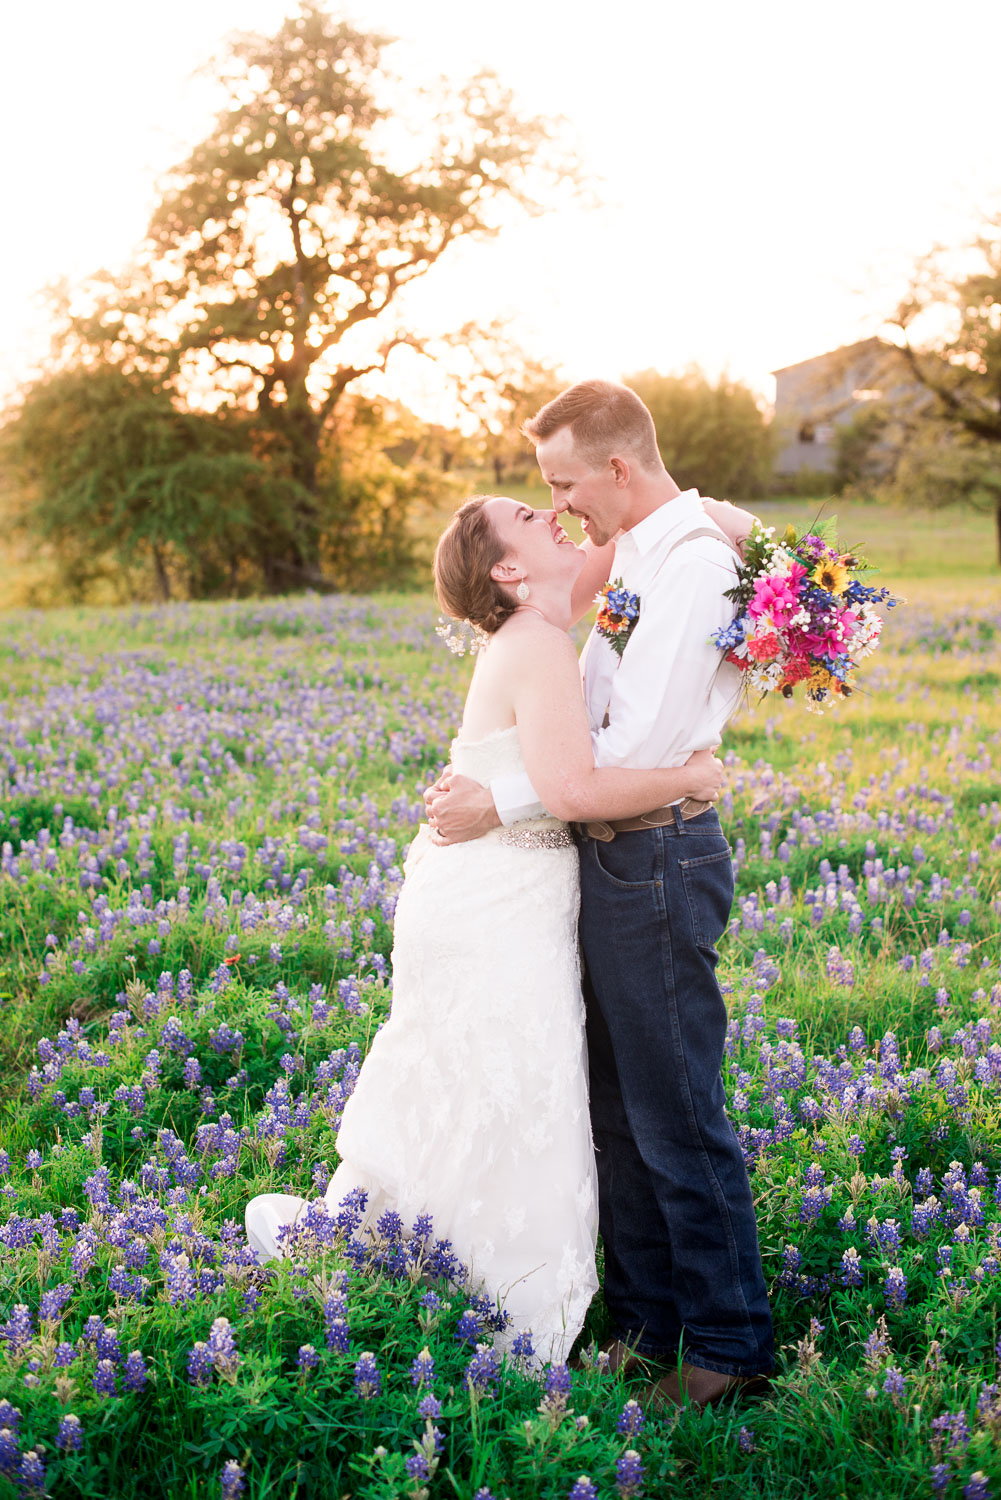 97 kissing bridal photos during golden hour in texas in march.jpg